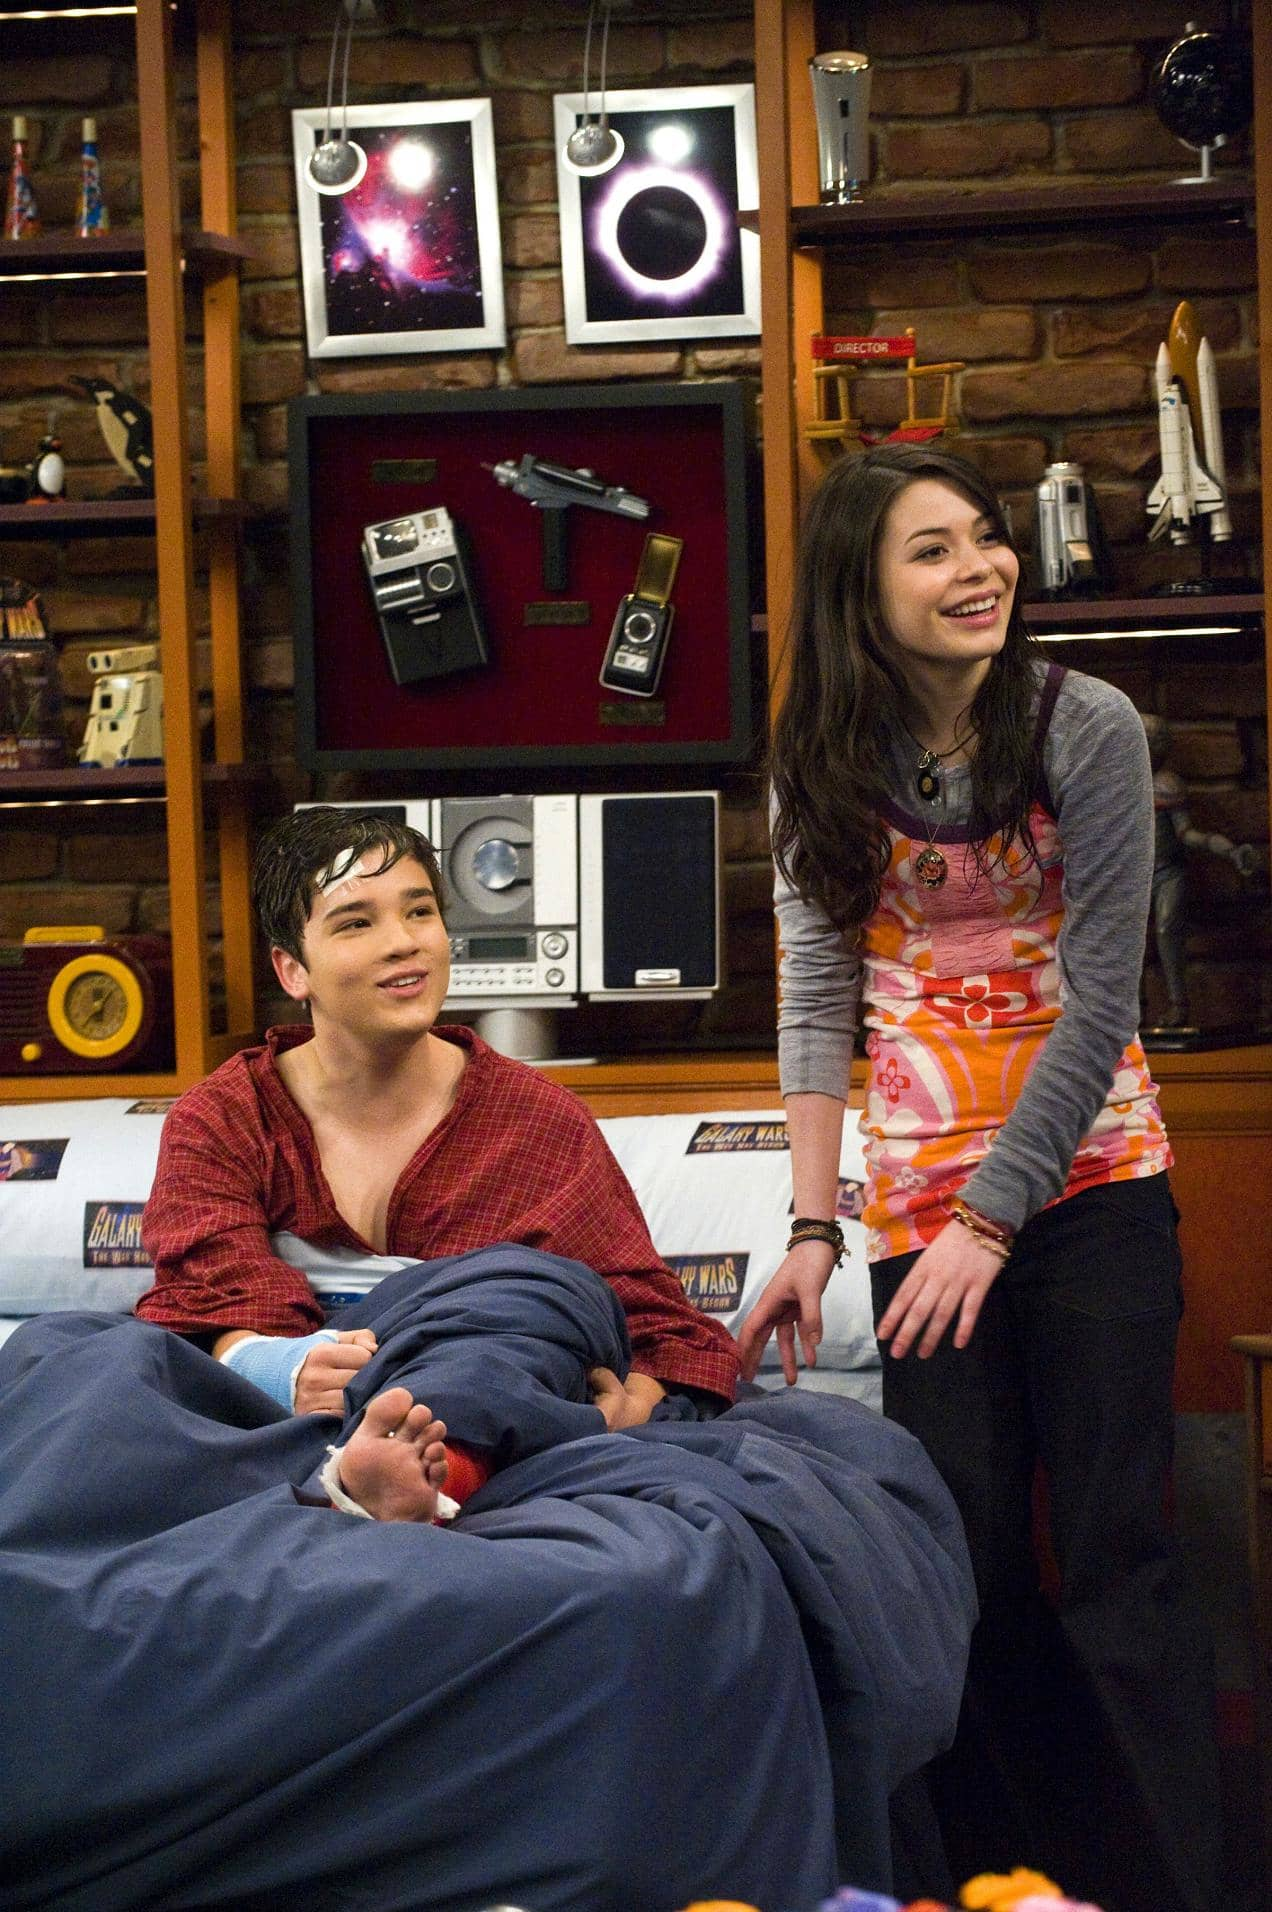 Miranda Cosgrove Icarly Season 3 Isaved Your Life Stills Favorite Celebrity Pictures